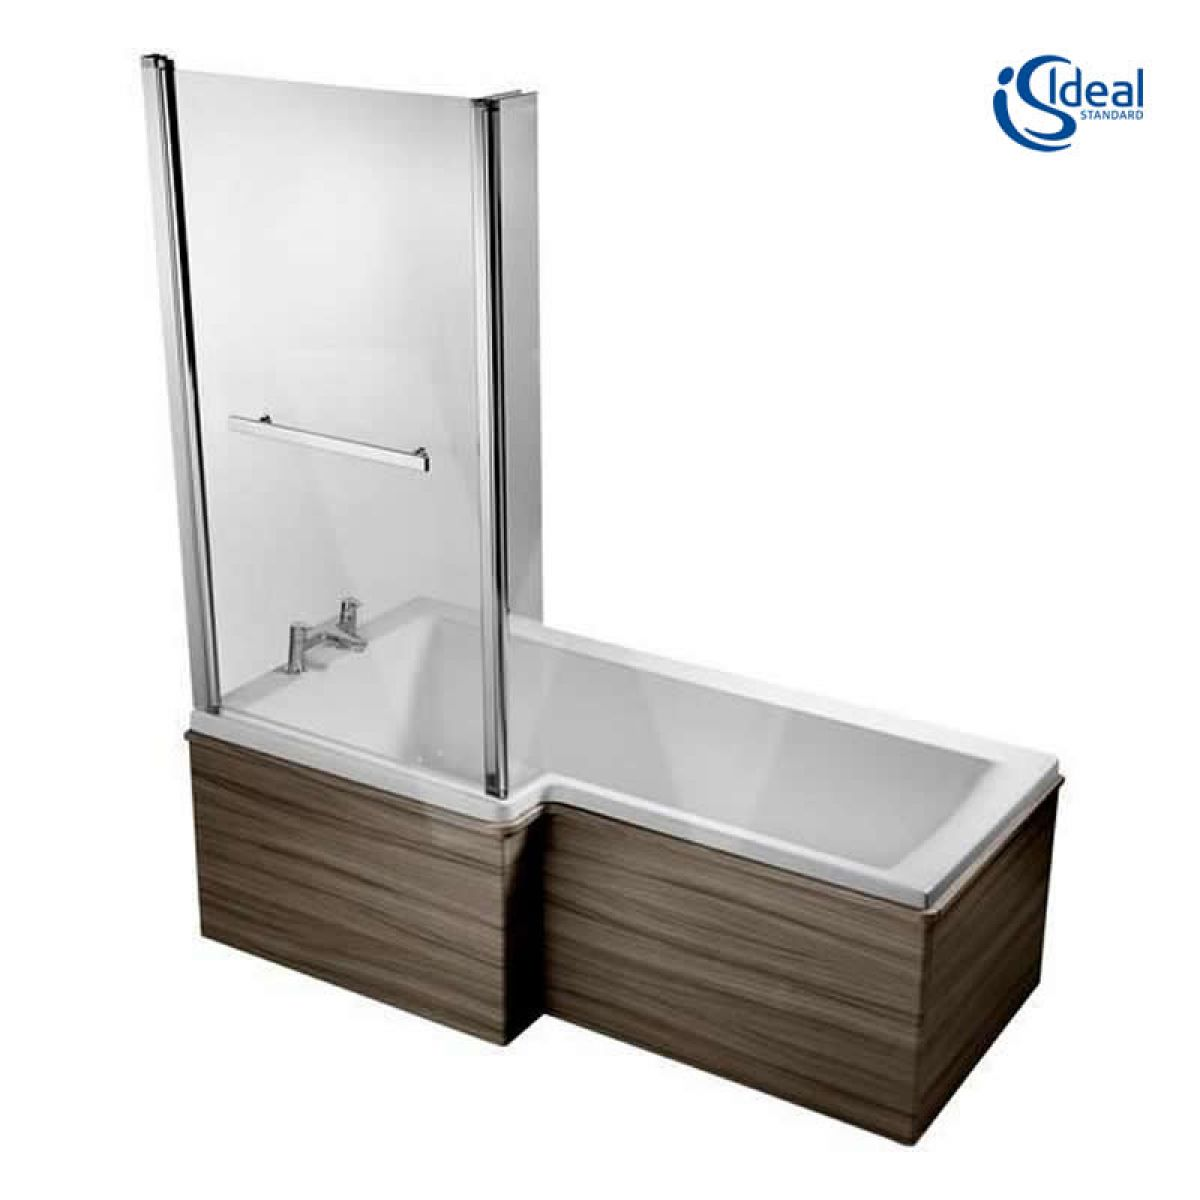 ideal standard concept space 1700mm square shower bath